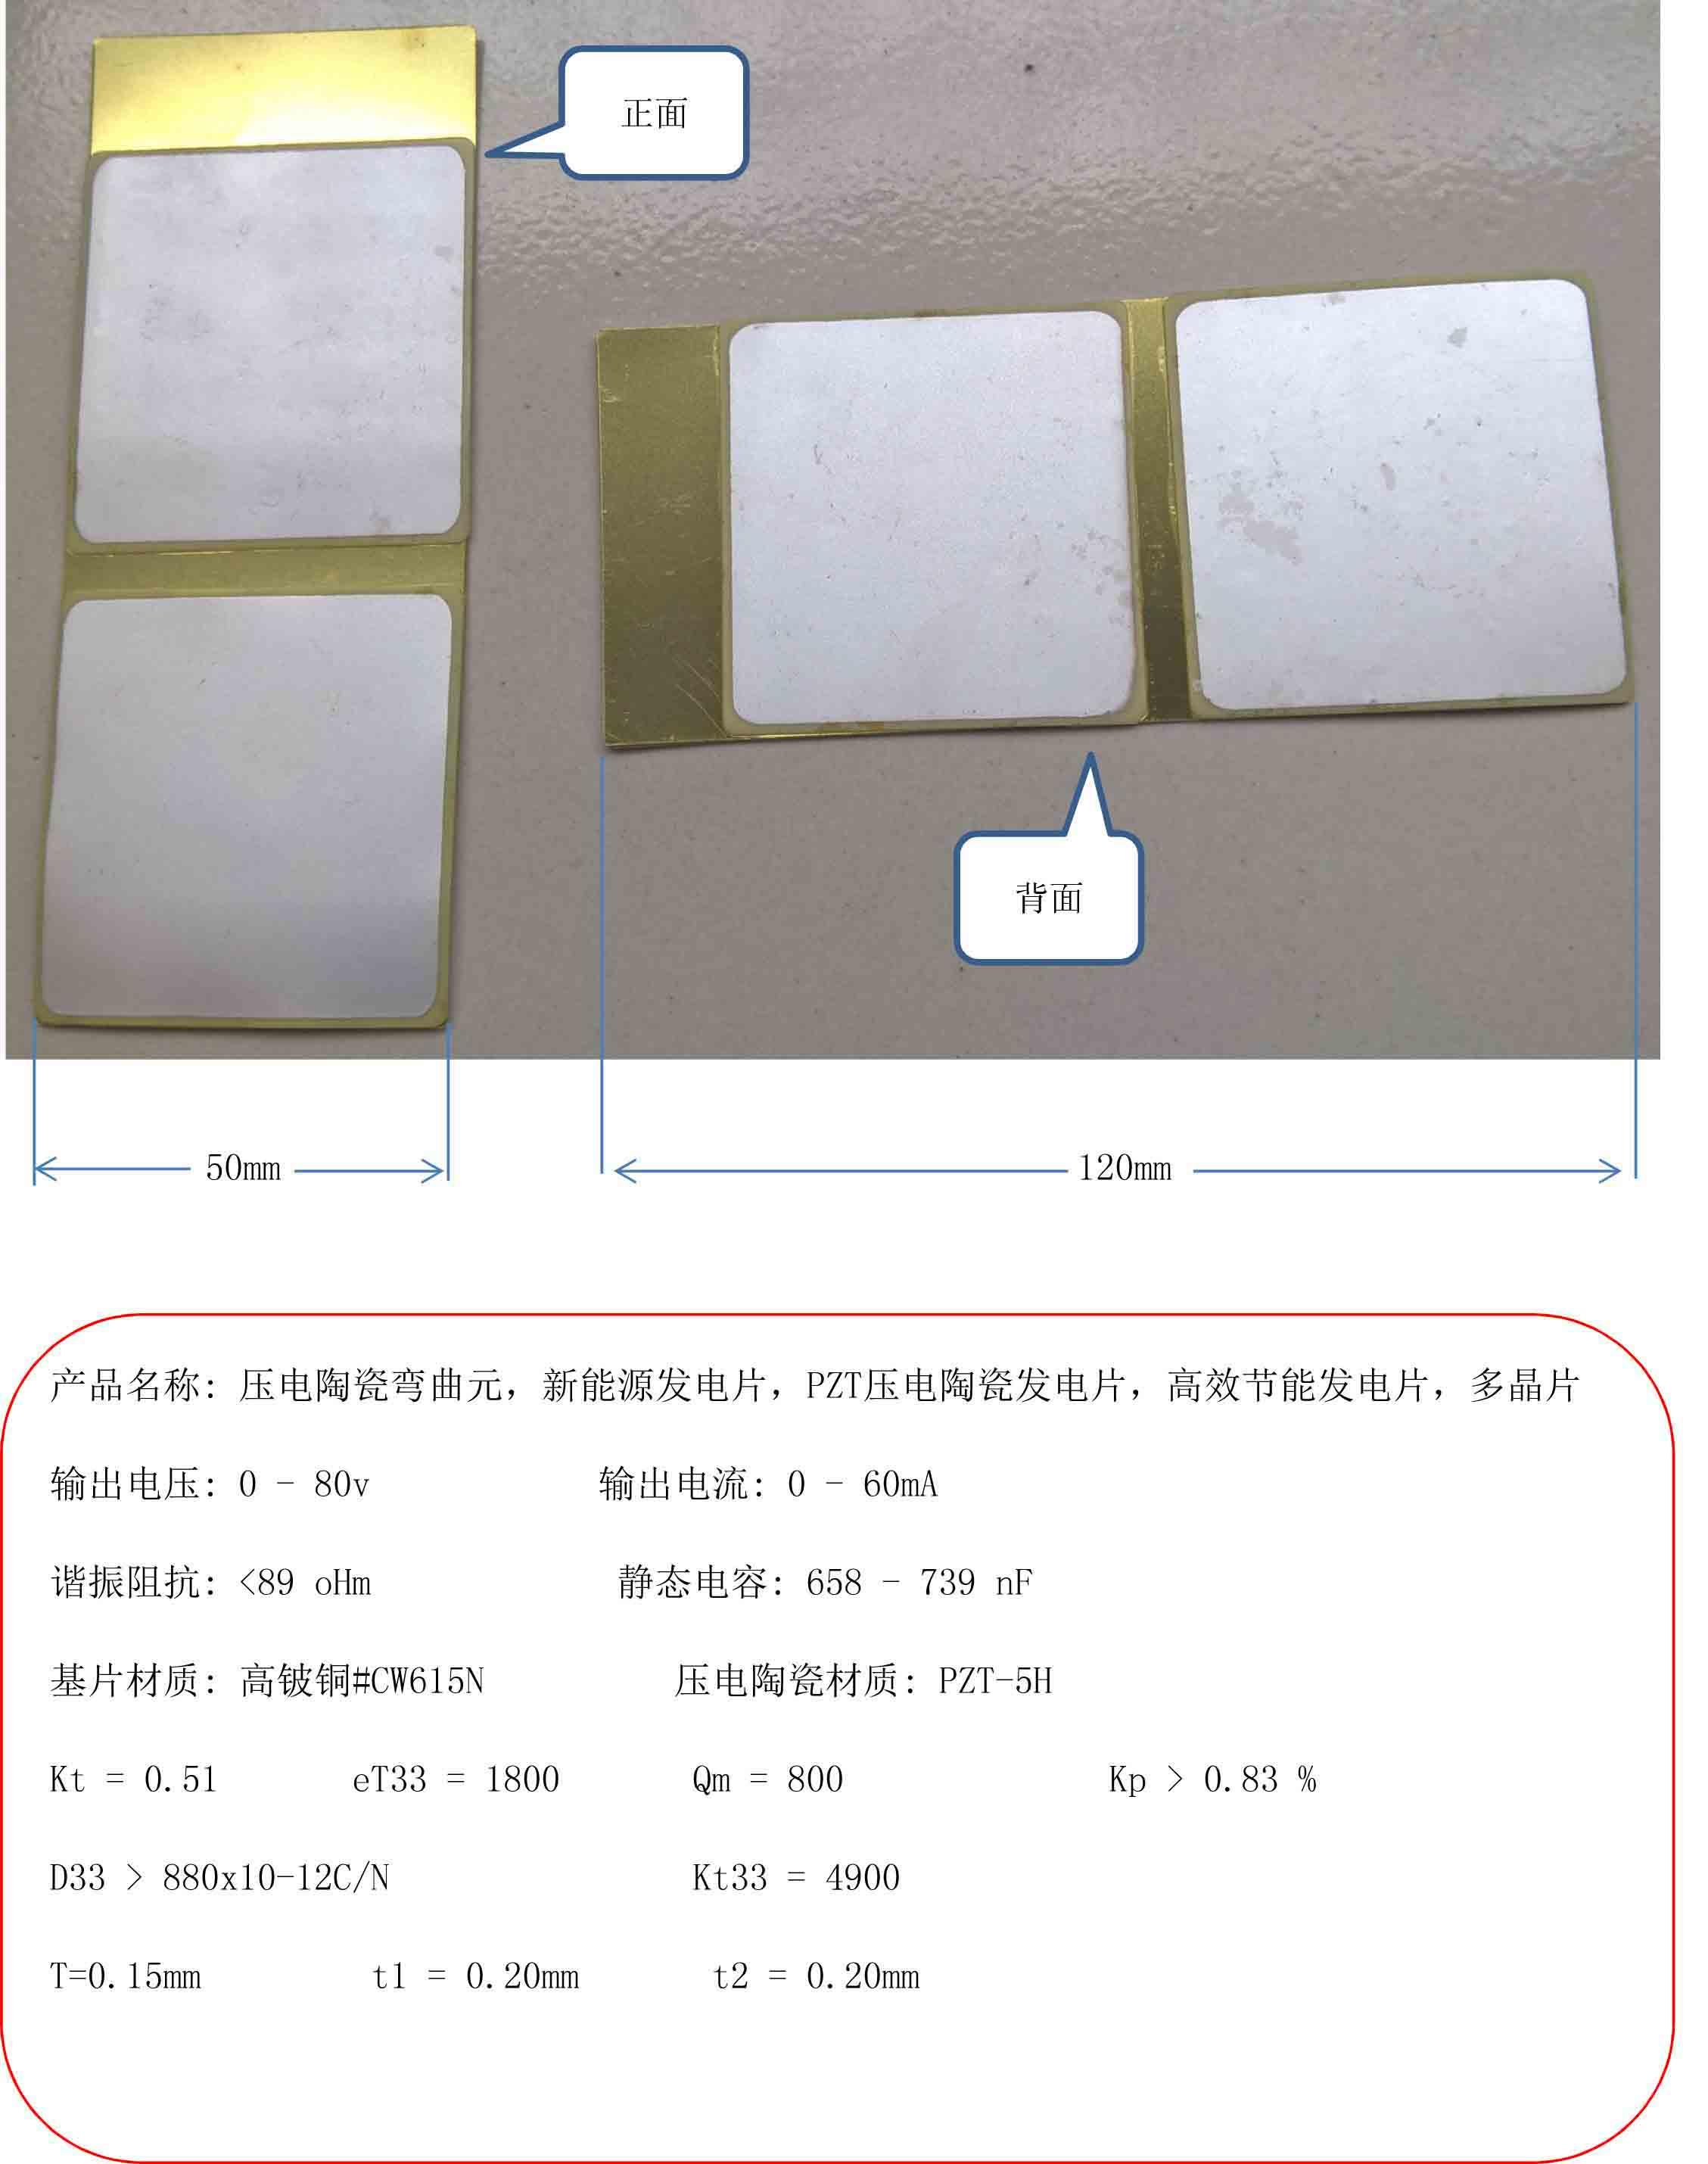 PZT Piezoelectric Ceramic Power Generation, New Energy Power Generation, Multi Chip, 120*50mm Ceramic Power Generating Sheet. 10 95mm piezoelectric ceramic chip